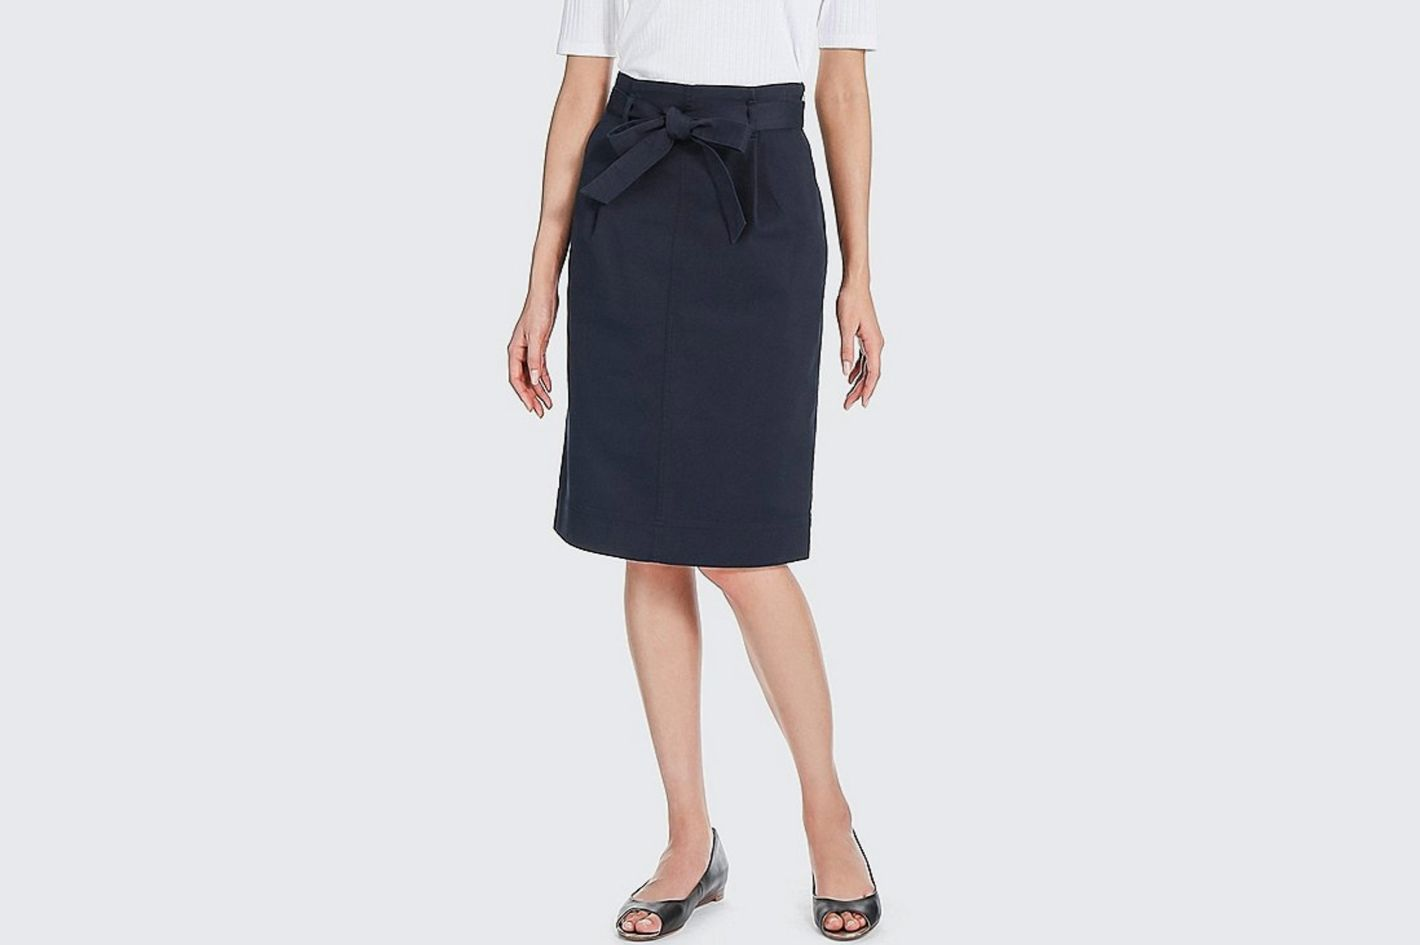 Uniqlo High-Waist Belted Narrow Skirt